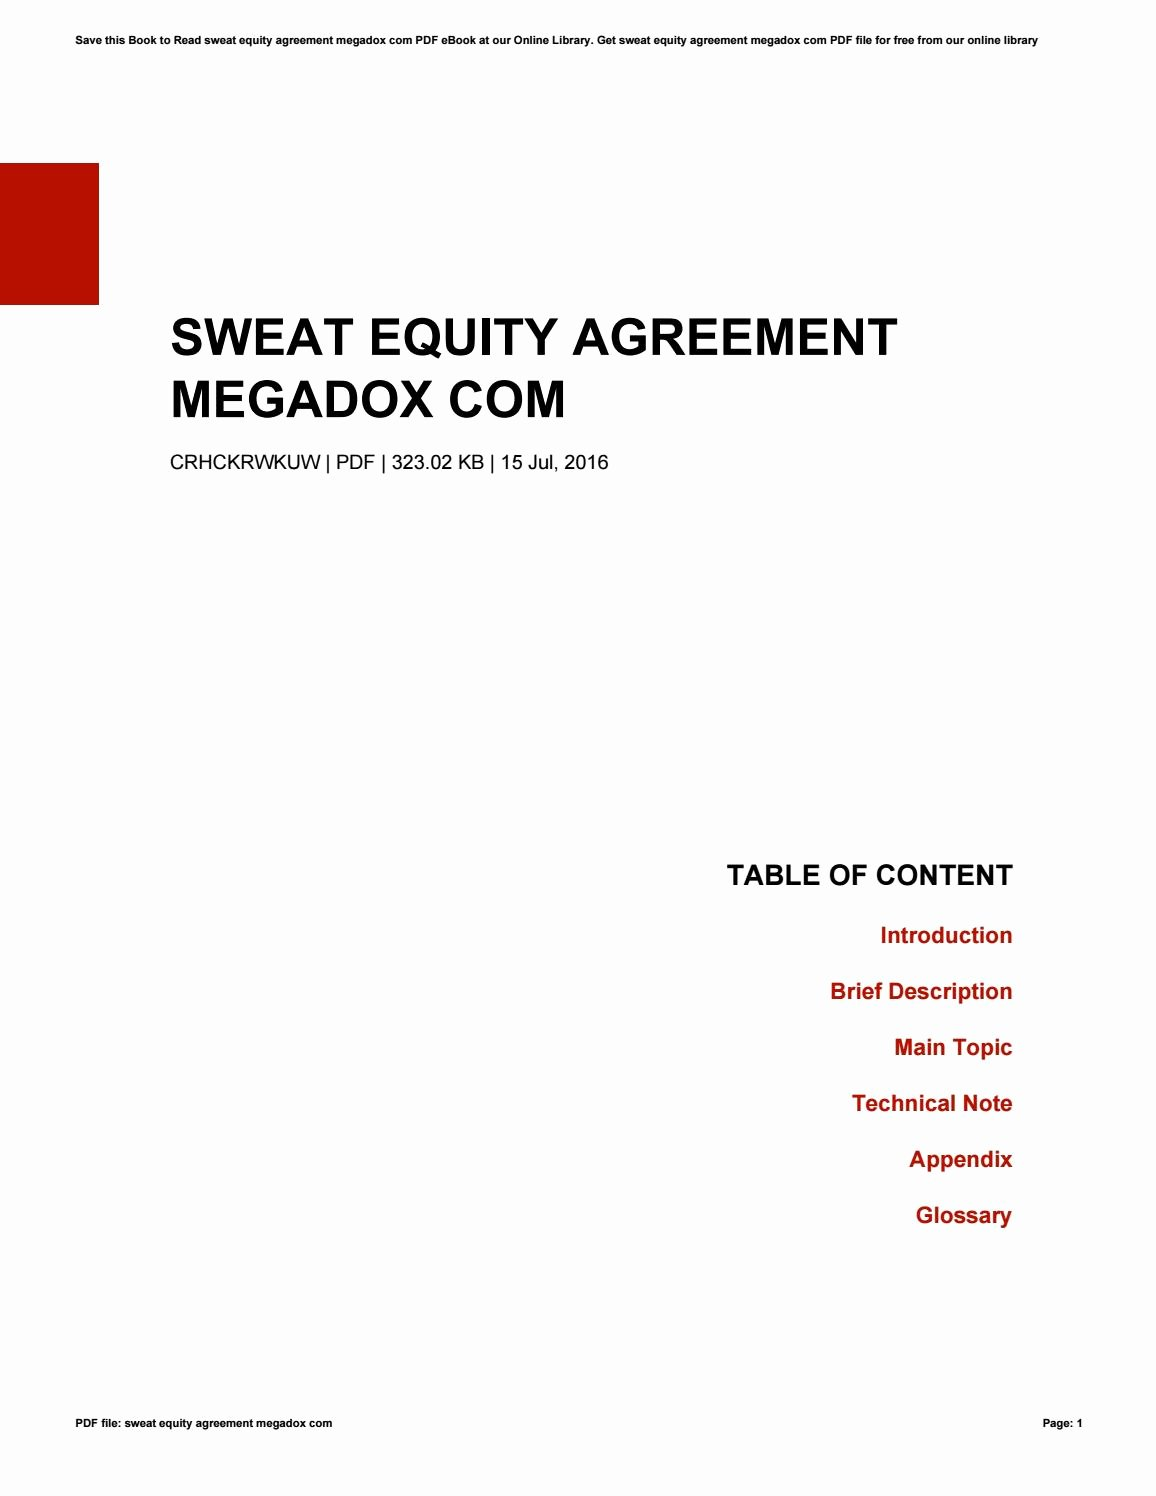 Equity Share Agreement Template Fresh Sweat Equity Agreement Megadox by theresaholford4092